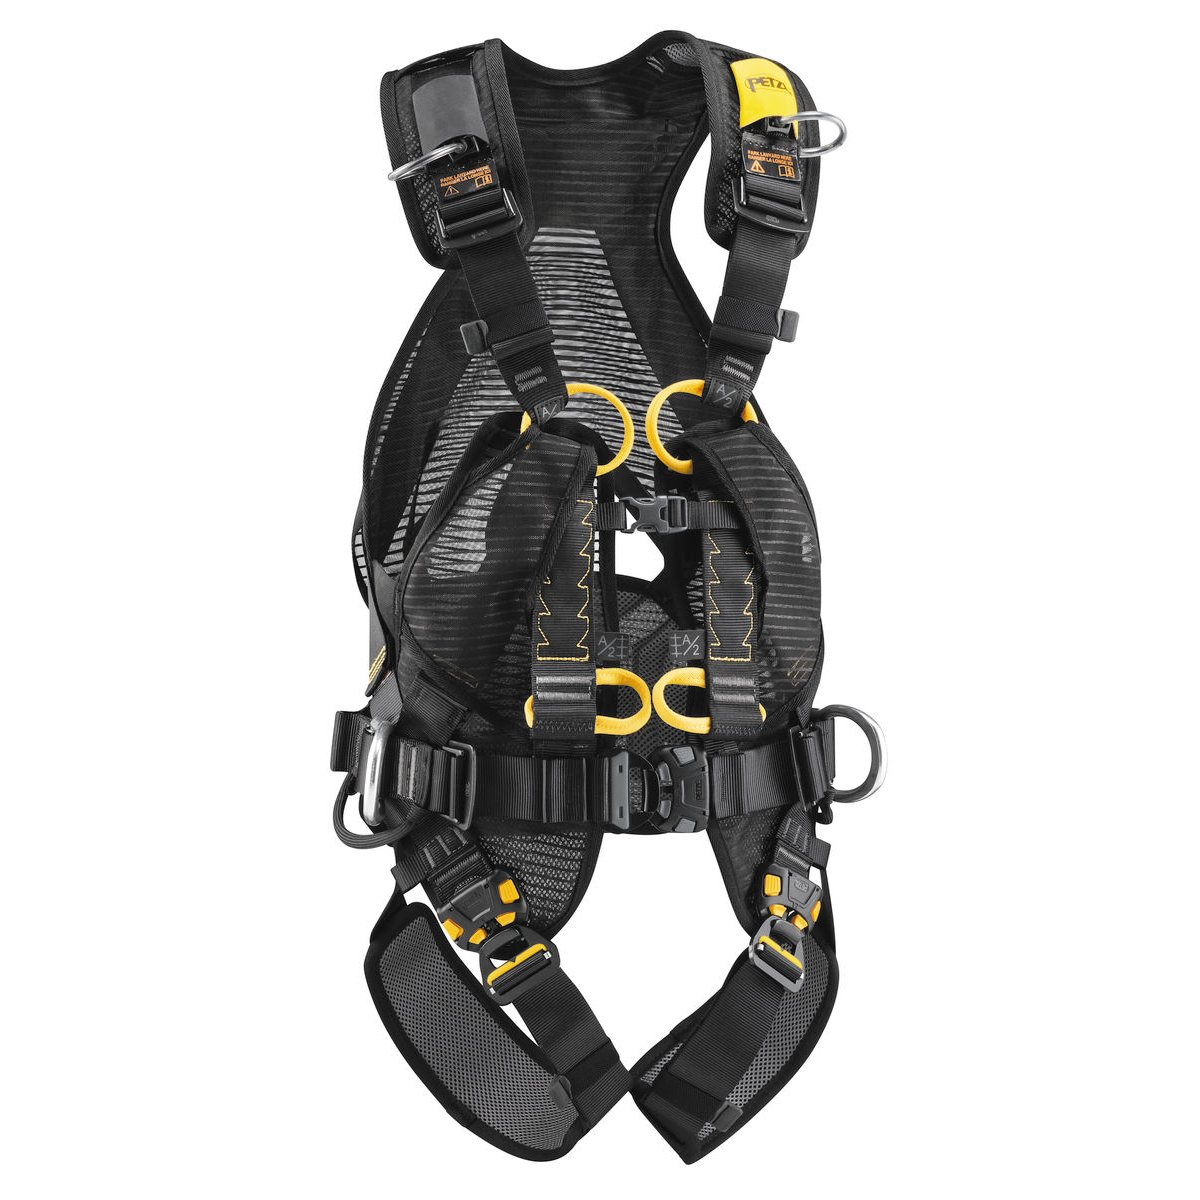 Amazon.com : Petzl VOLT full harness with OXAN TRIACT-LOCK ...